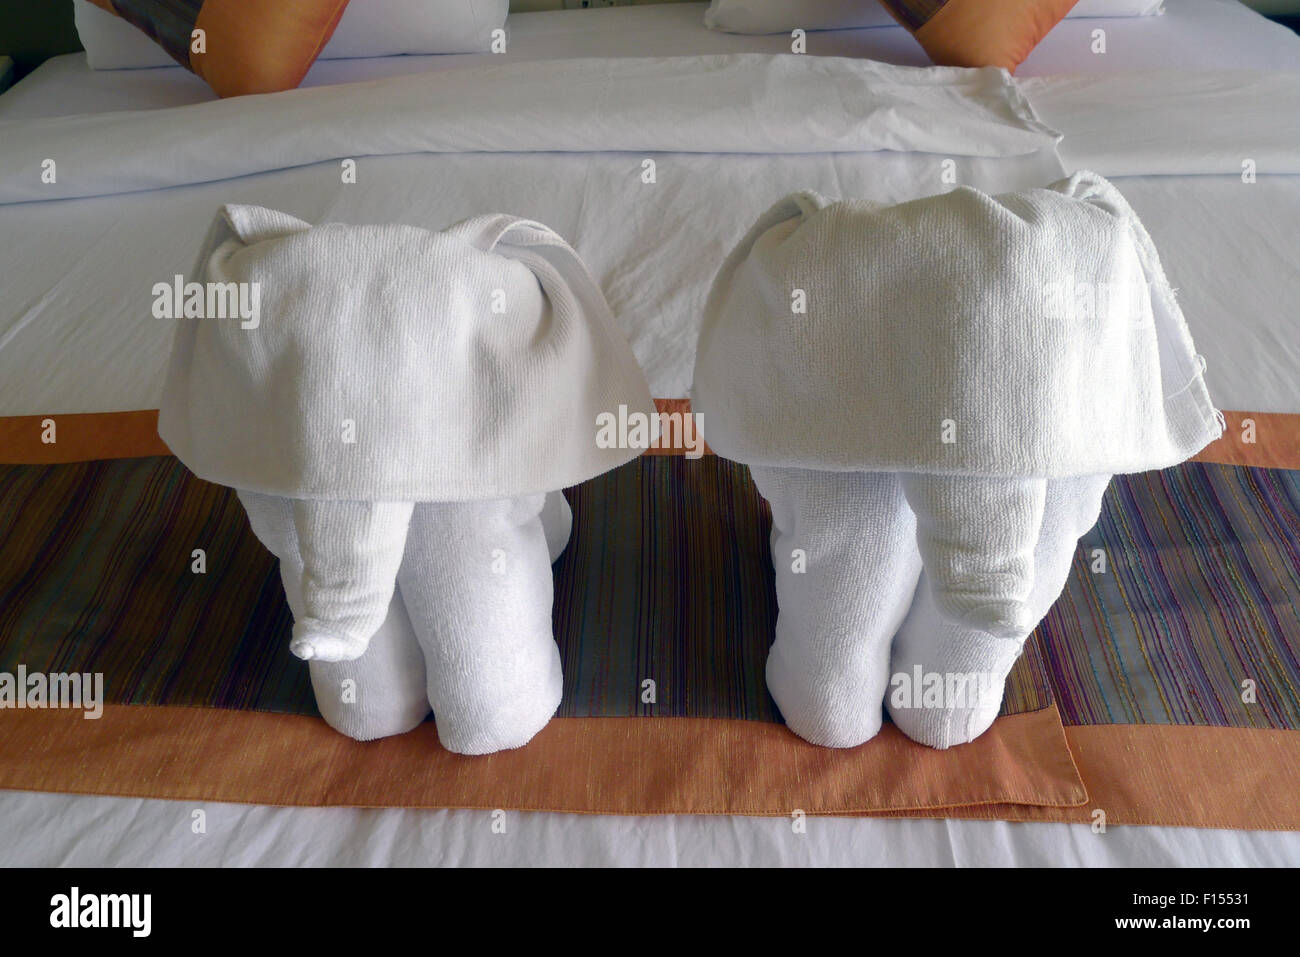 Towel Art Folded Out Of A Towel In The Form Of An Elephant Stock Photo Alamy